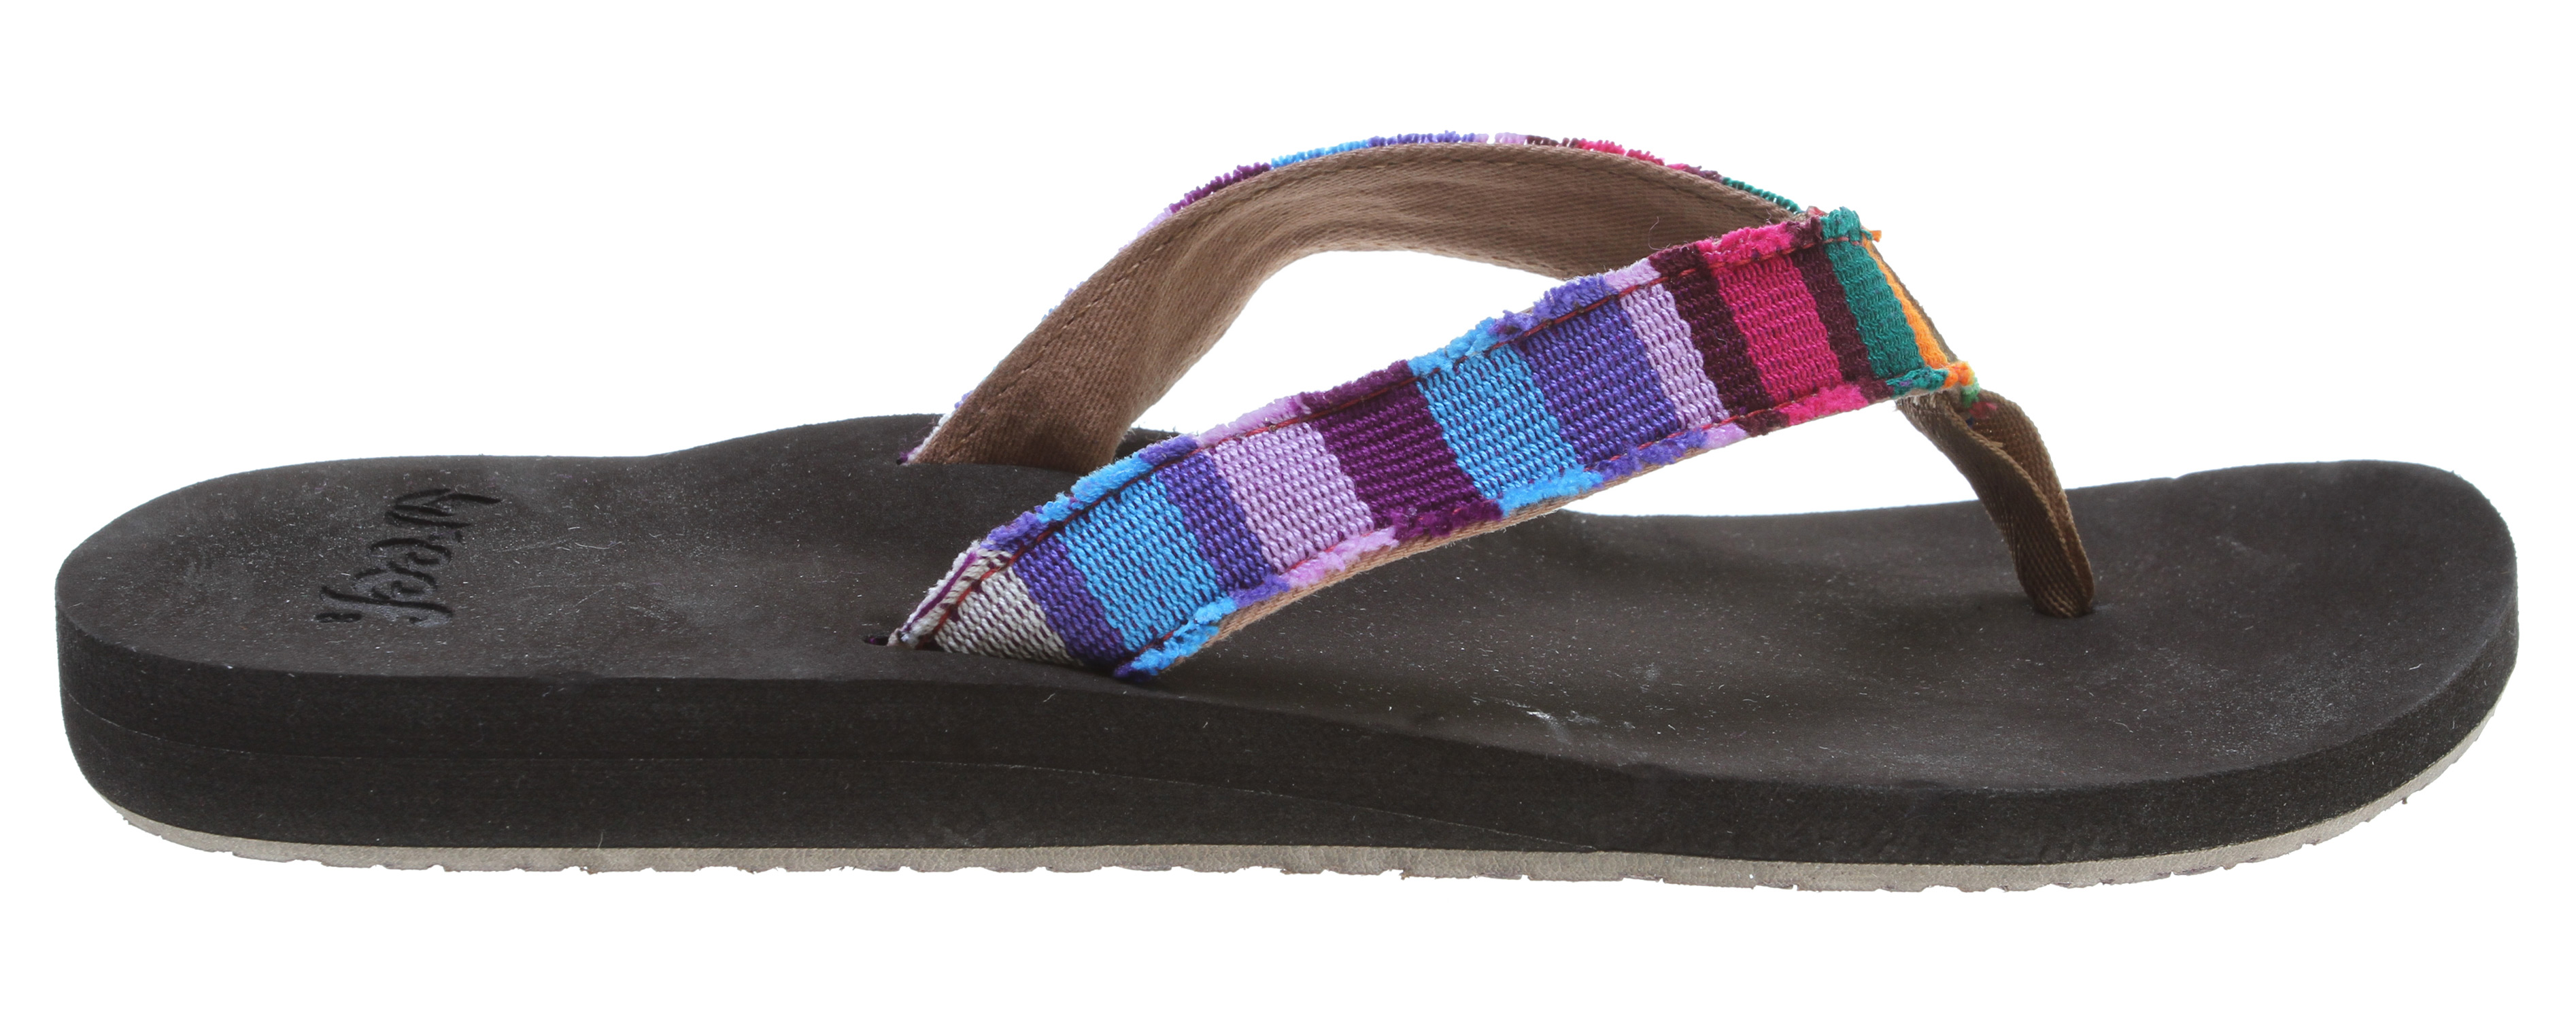 Surf Key Features of the Reef Guatemalan Love Sandals: Soft cotton strap featuring hand-woven textiles from Guatemala Suede toepost logo; woven polyester toepost Eva footbed with anatomical arch support Durable rubber outsole - $20.95